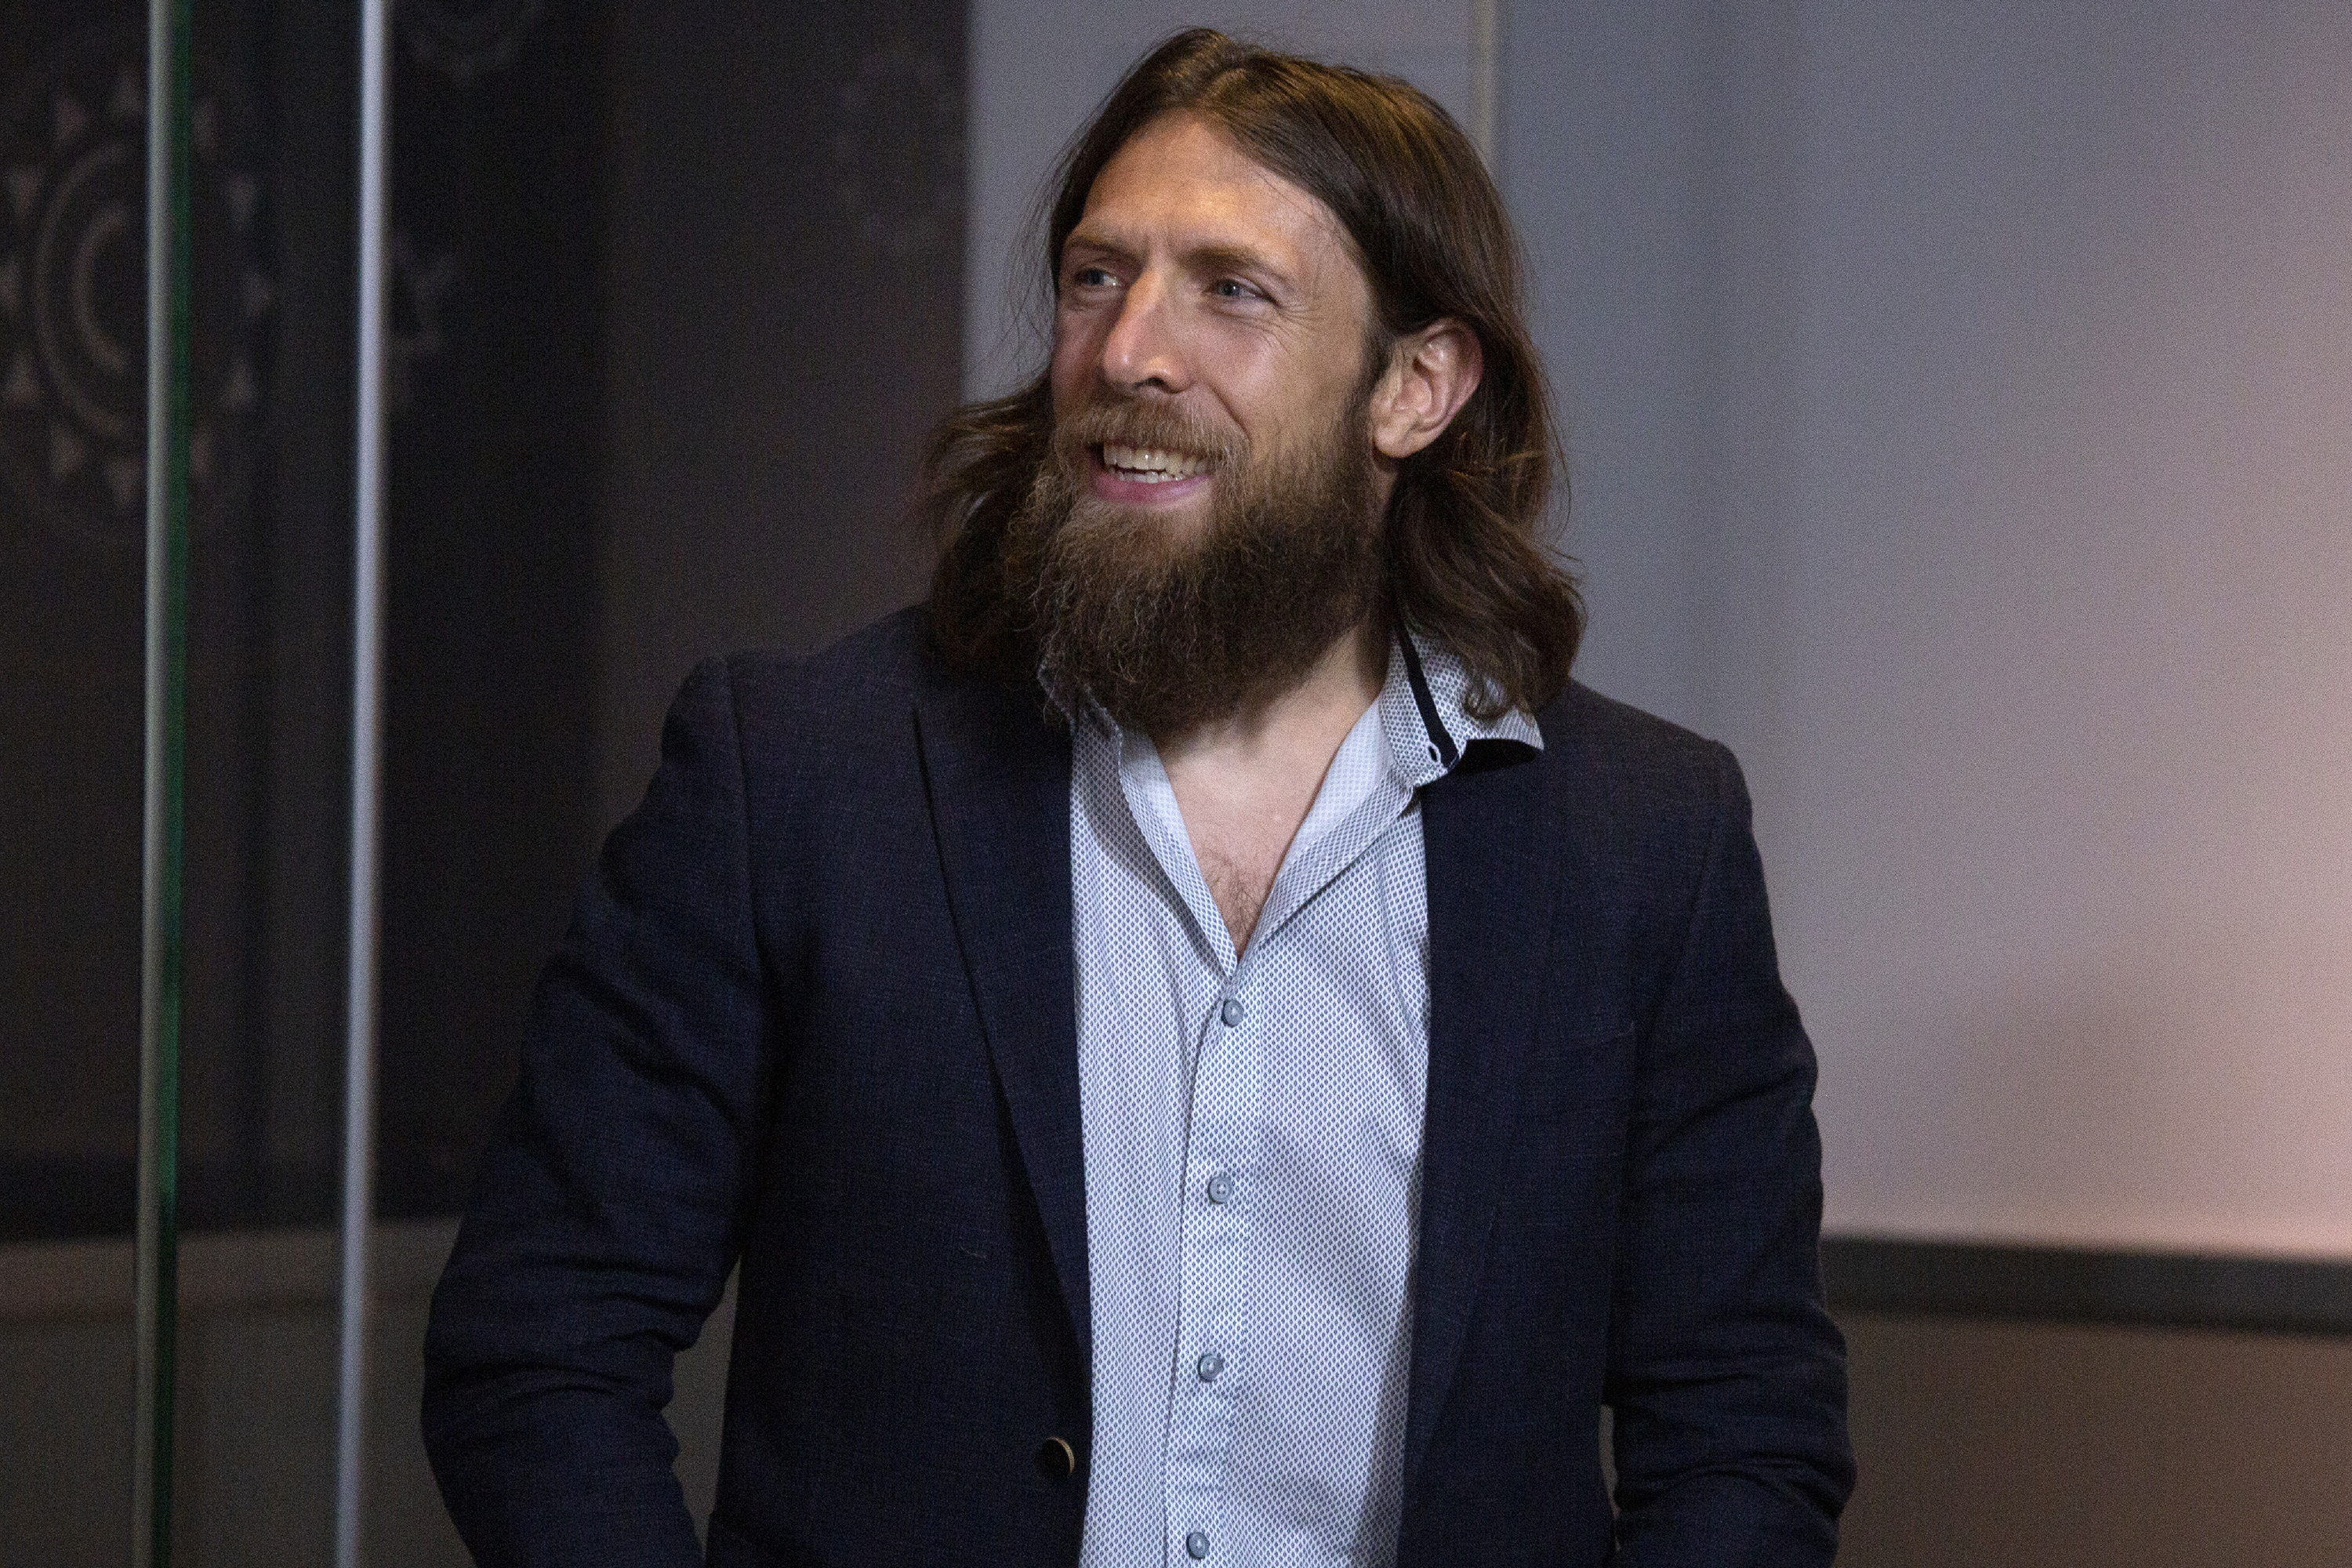 WWE Superstar Daniel Bryan Celebrate's Wrestlemania 35 at The Empire State Building on April 05, 2019 in New York City.